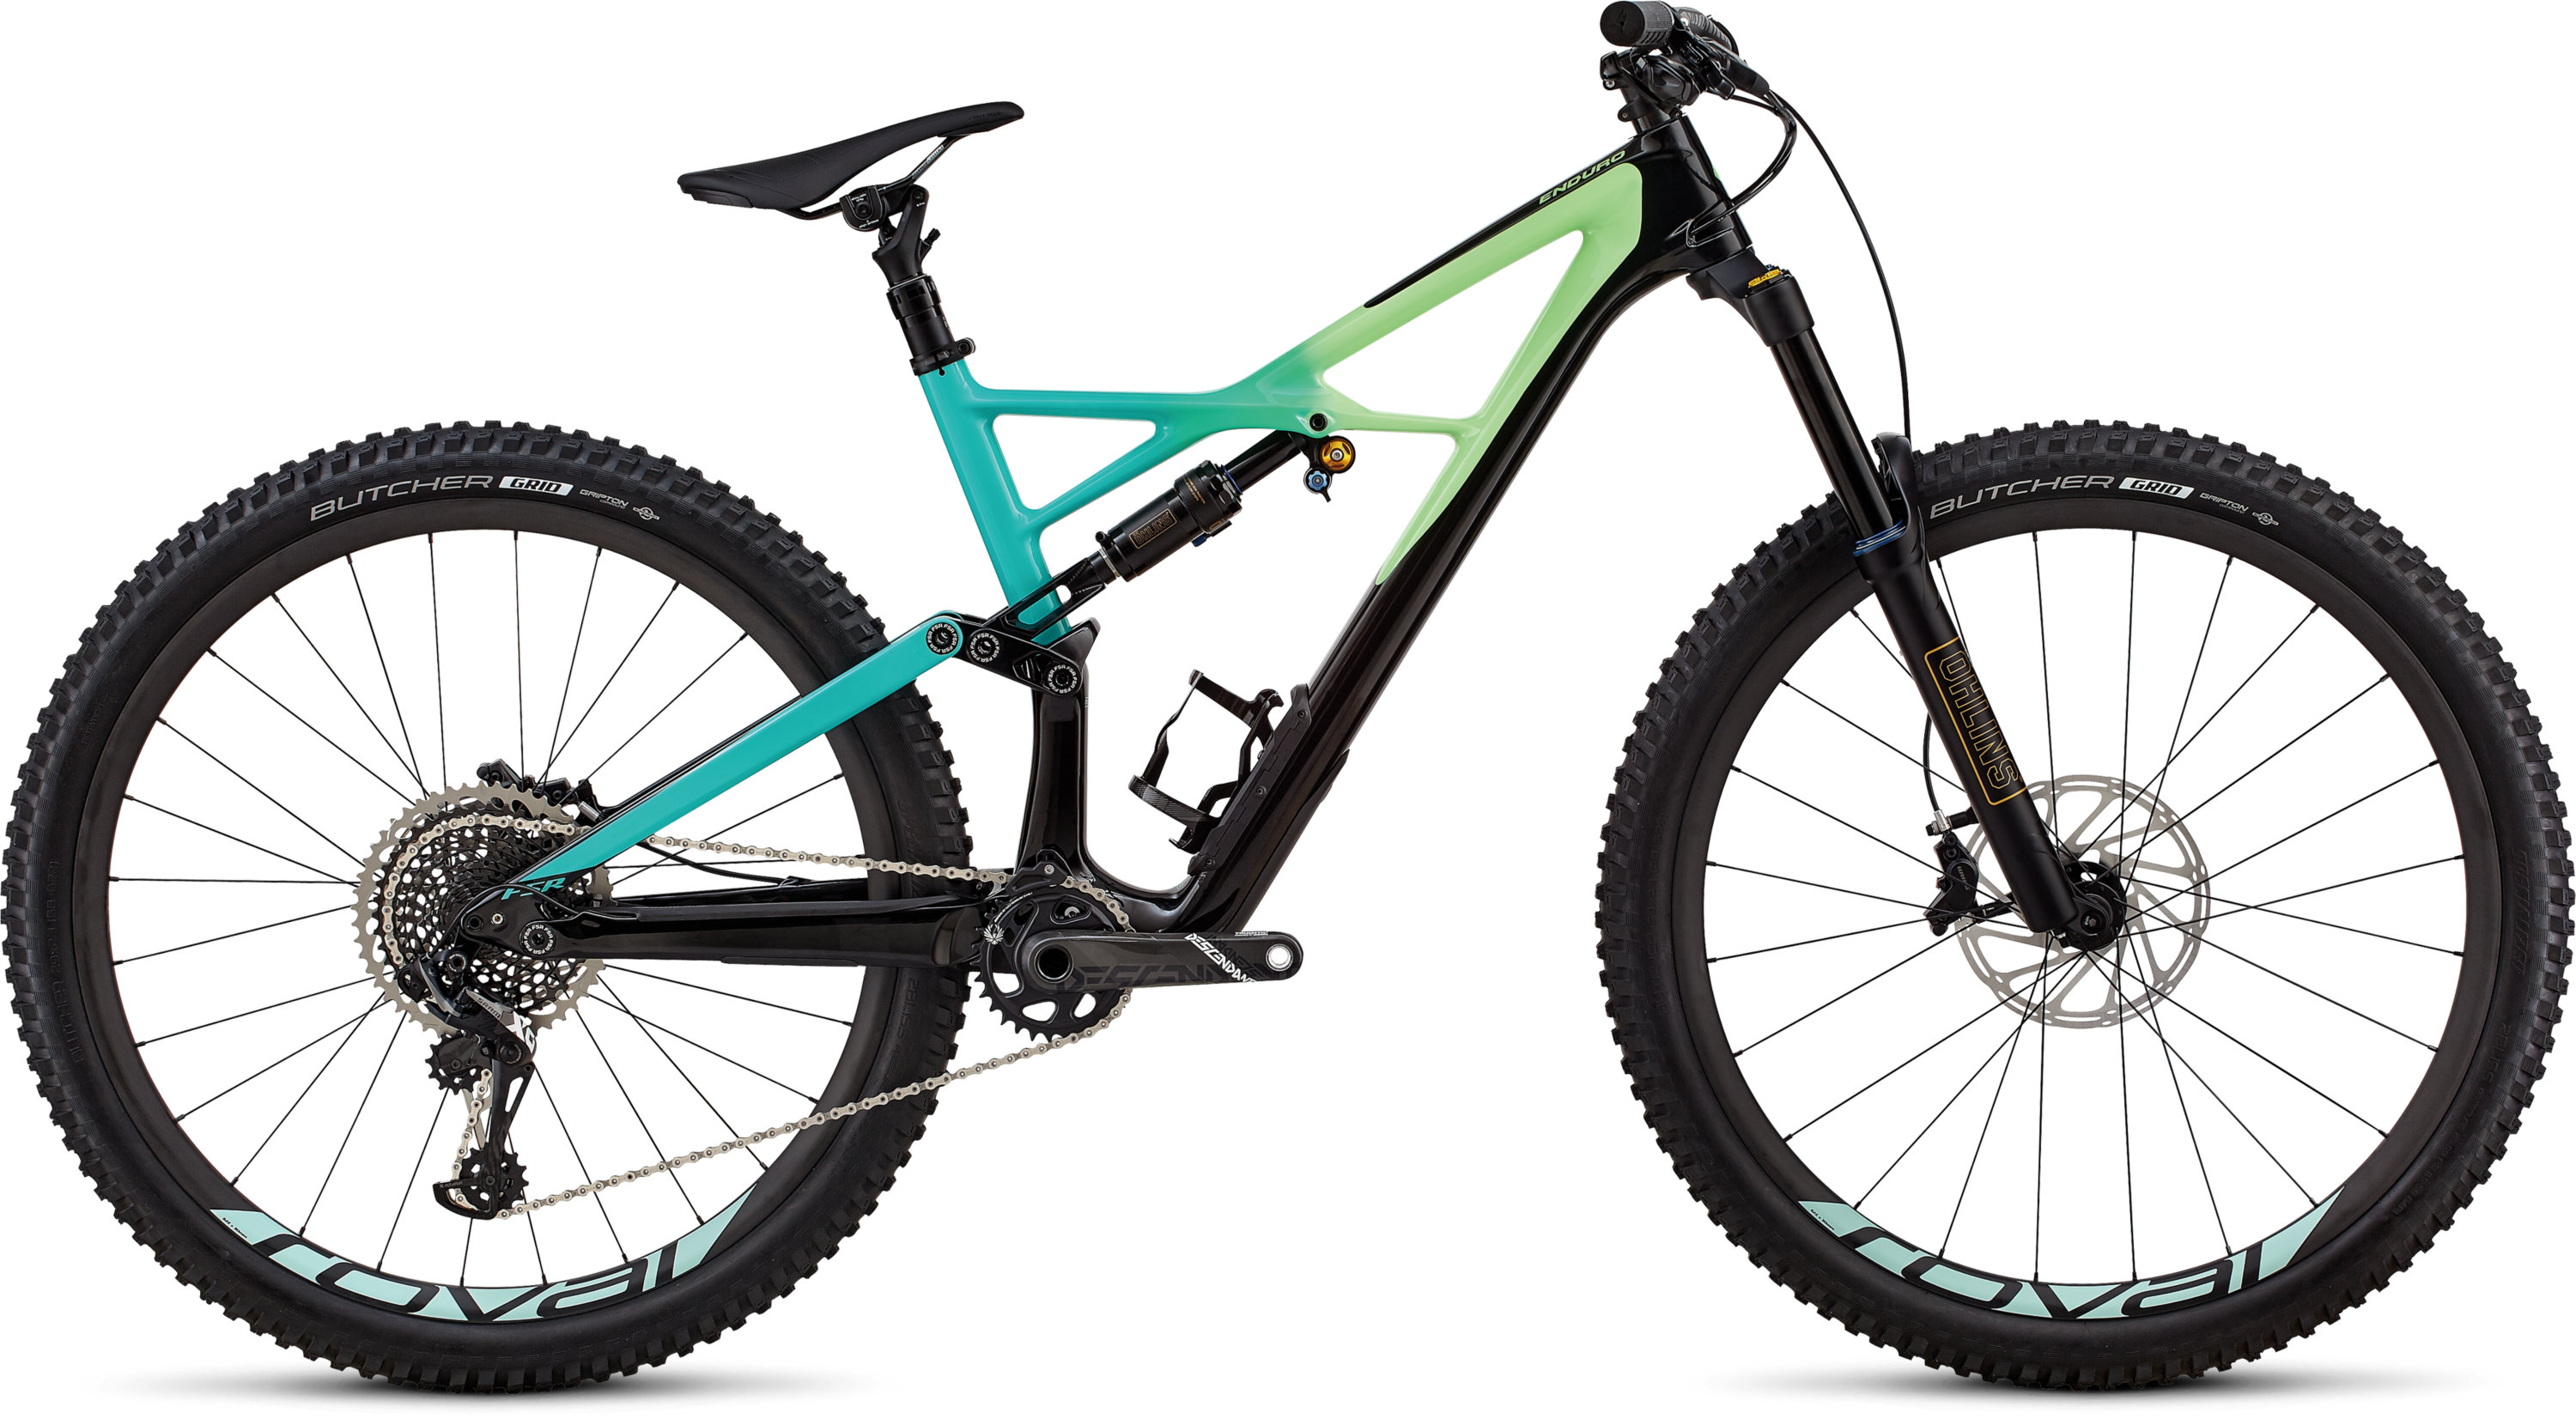 Specialized Enduro Pro 29/6Fattie GLOSS BLACK / CALI FADE / CHARCOAL L - Pulsschlag Bike+Sport